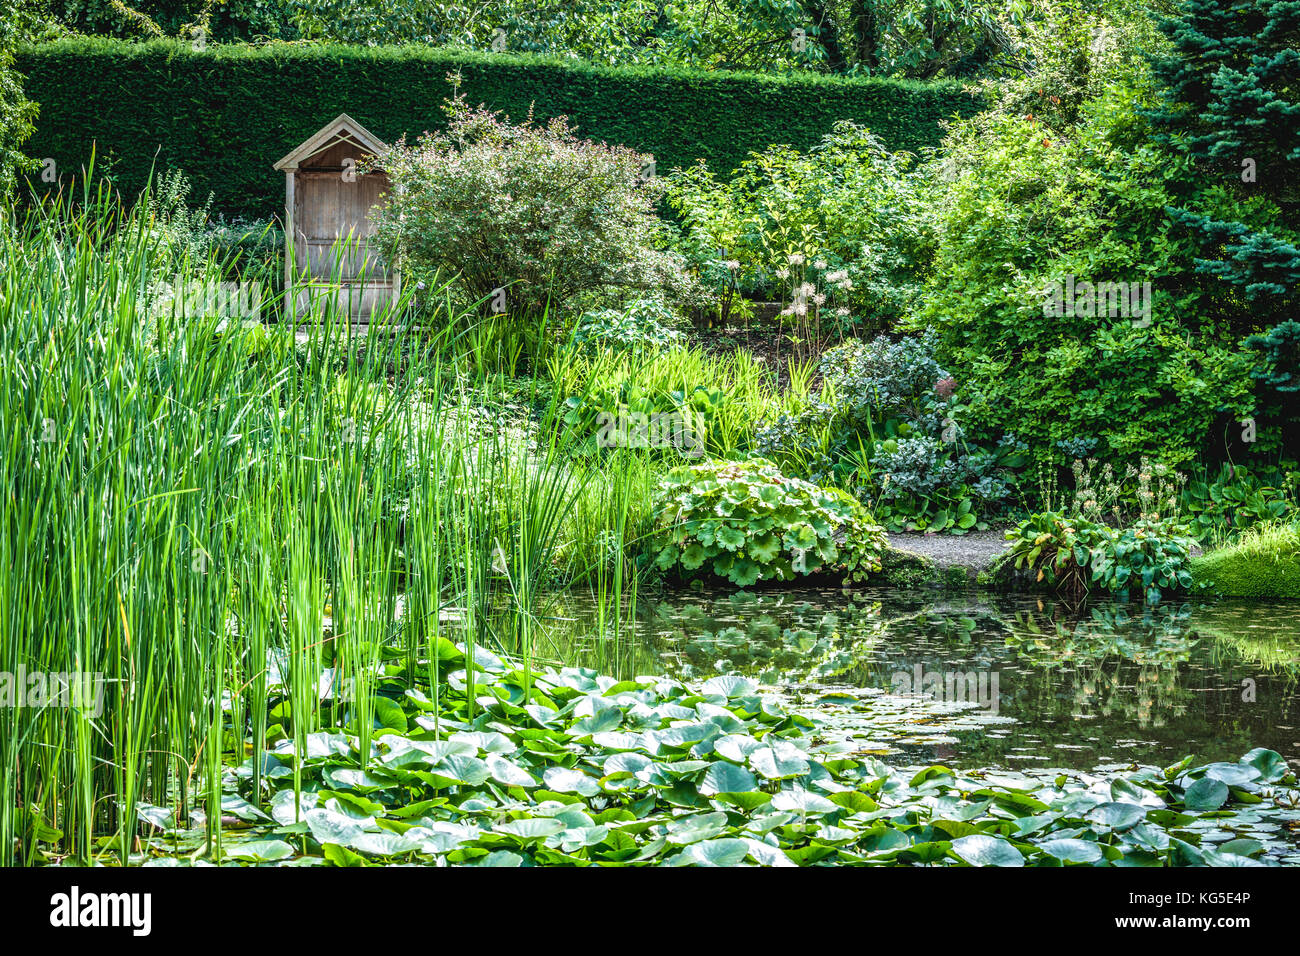 Waterlily pond at Ness Gardens in Neston, Cheshire - Stock Image